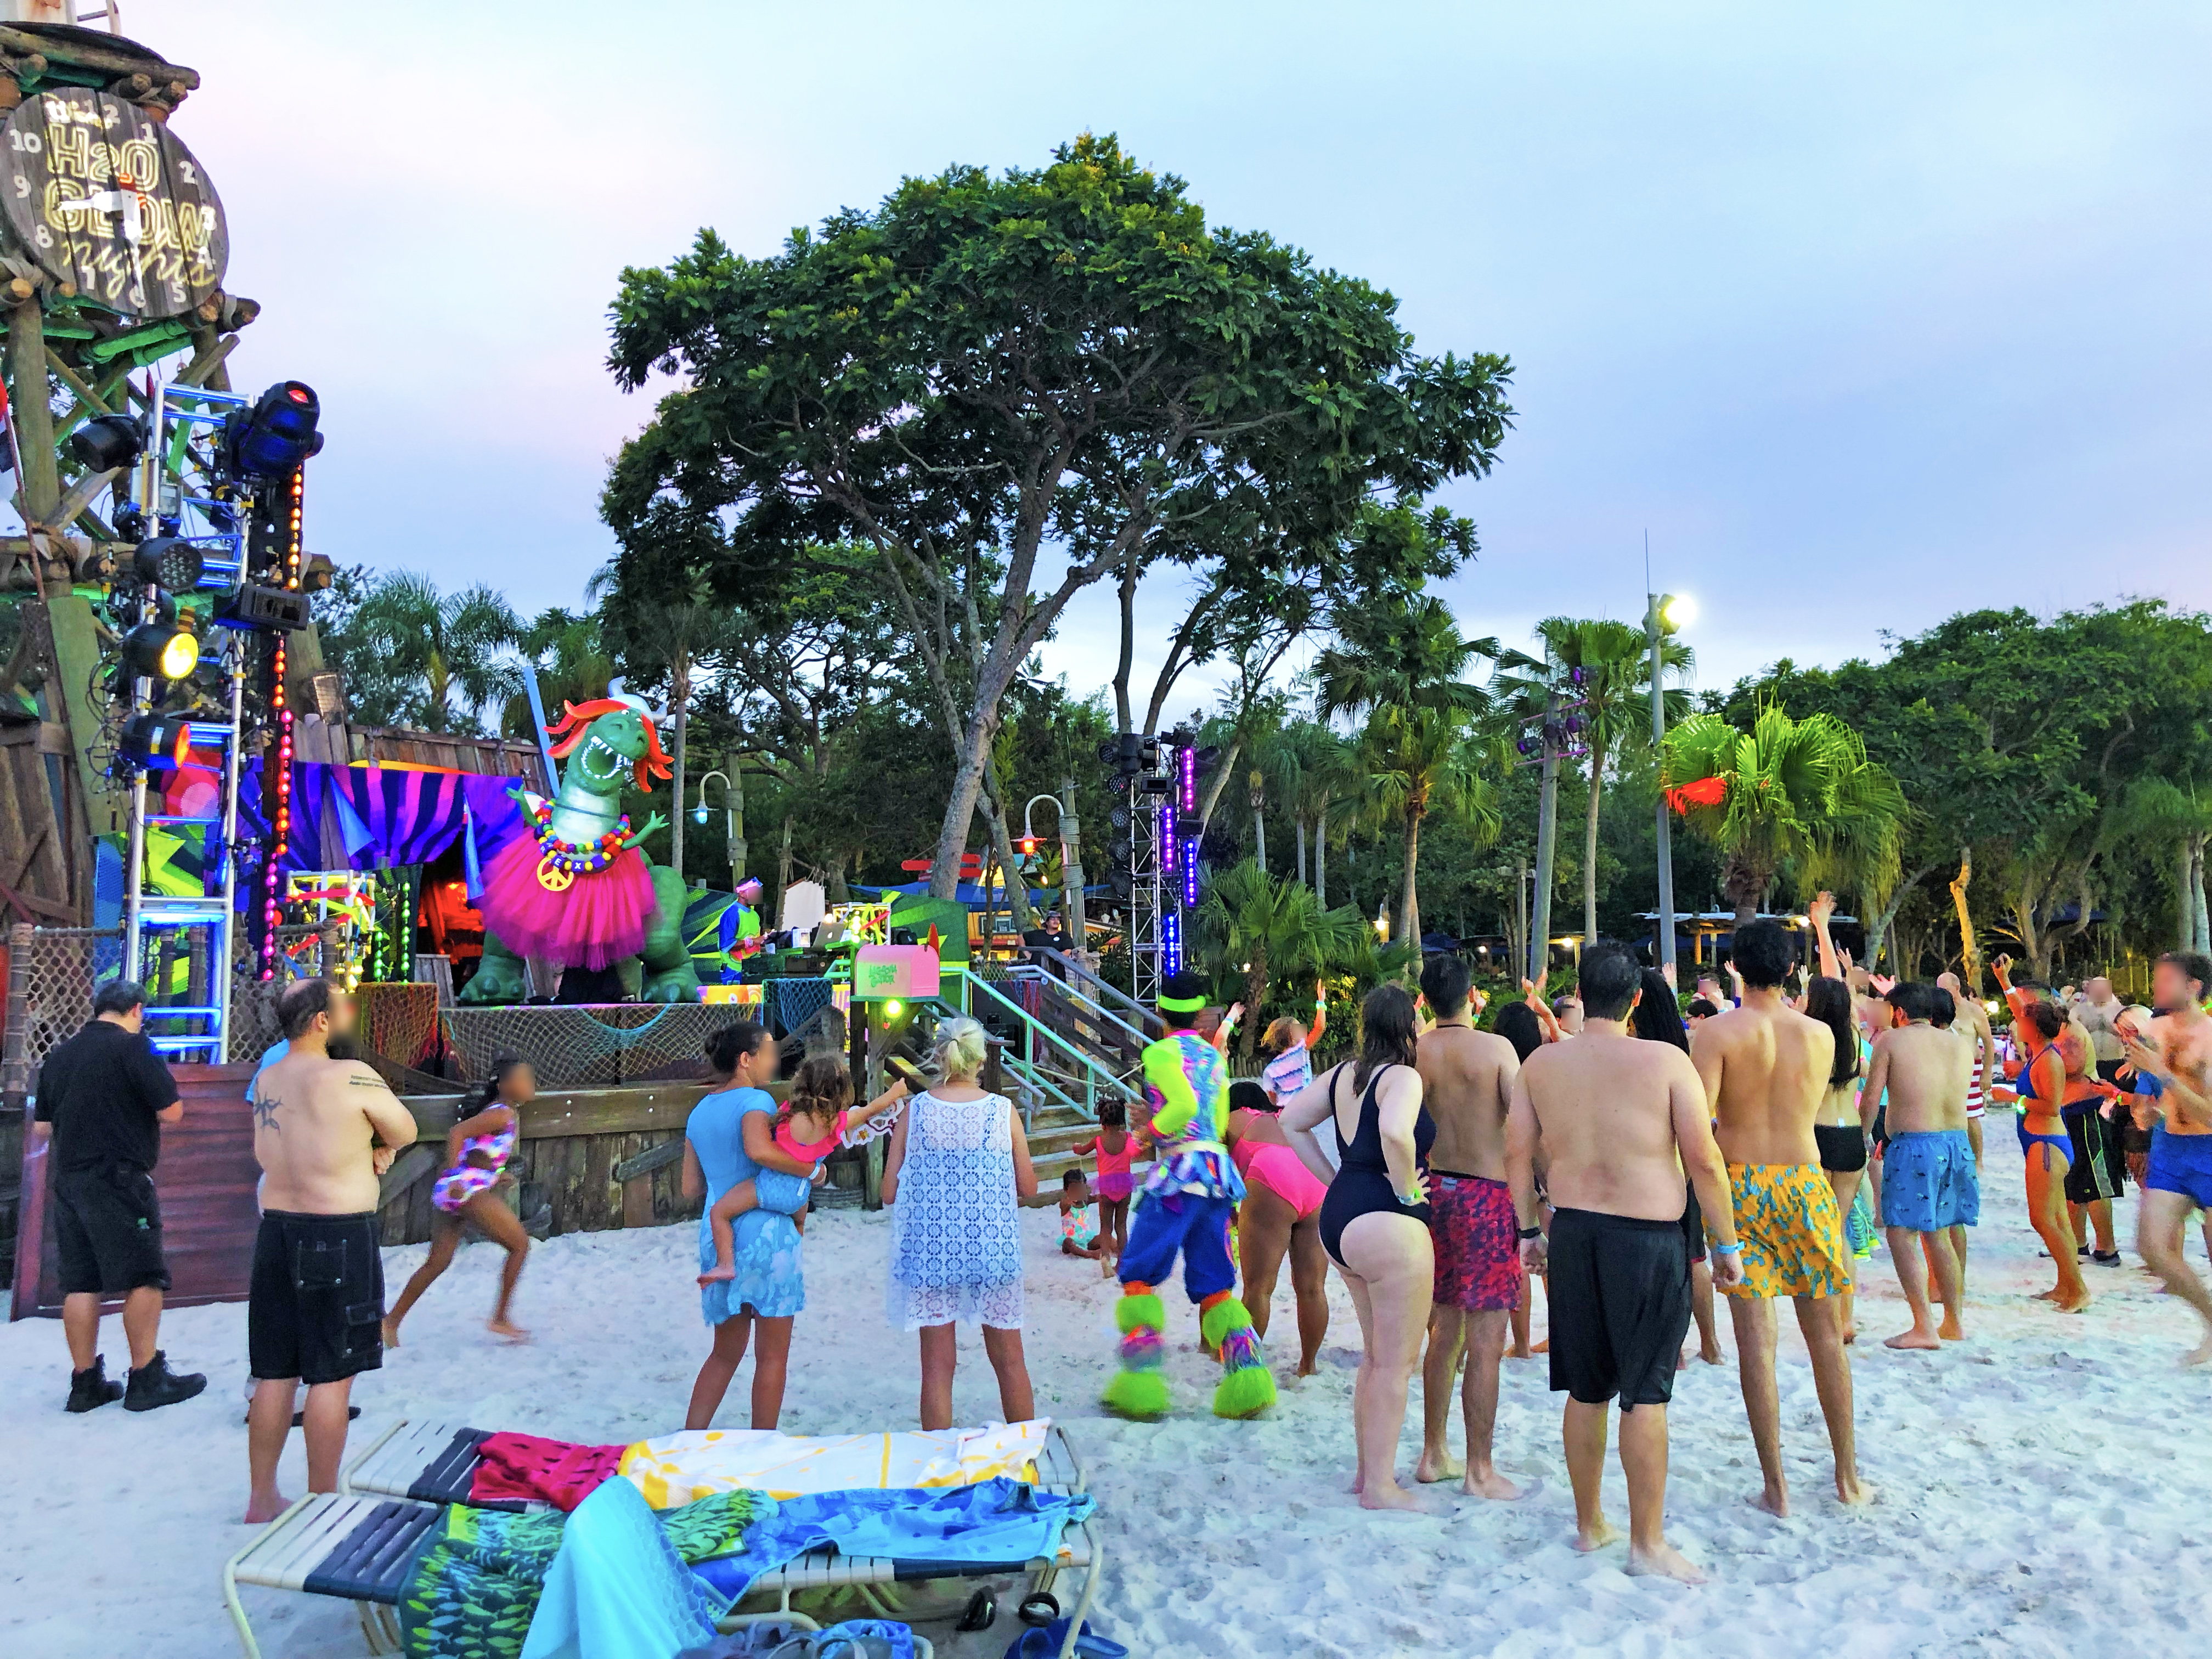 Crowd of people standing, running and/or dancing on the beach sand as a DJ is on a lit-up live stage in front of Disney's Typhoon Lagoon clock tower (which reads Disney's H2O Glow Nights). During the daytime. On stage, Toy Story character, Rex, is posed with his arms up in the air while wearing a pink tutu, some necklaces, and an orange wig and a silver horn metal helmet.